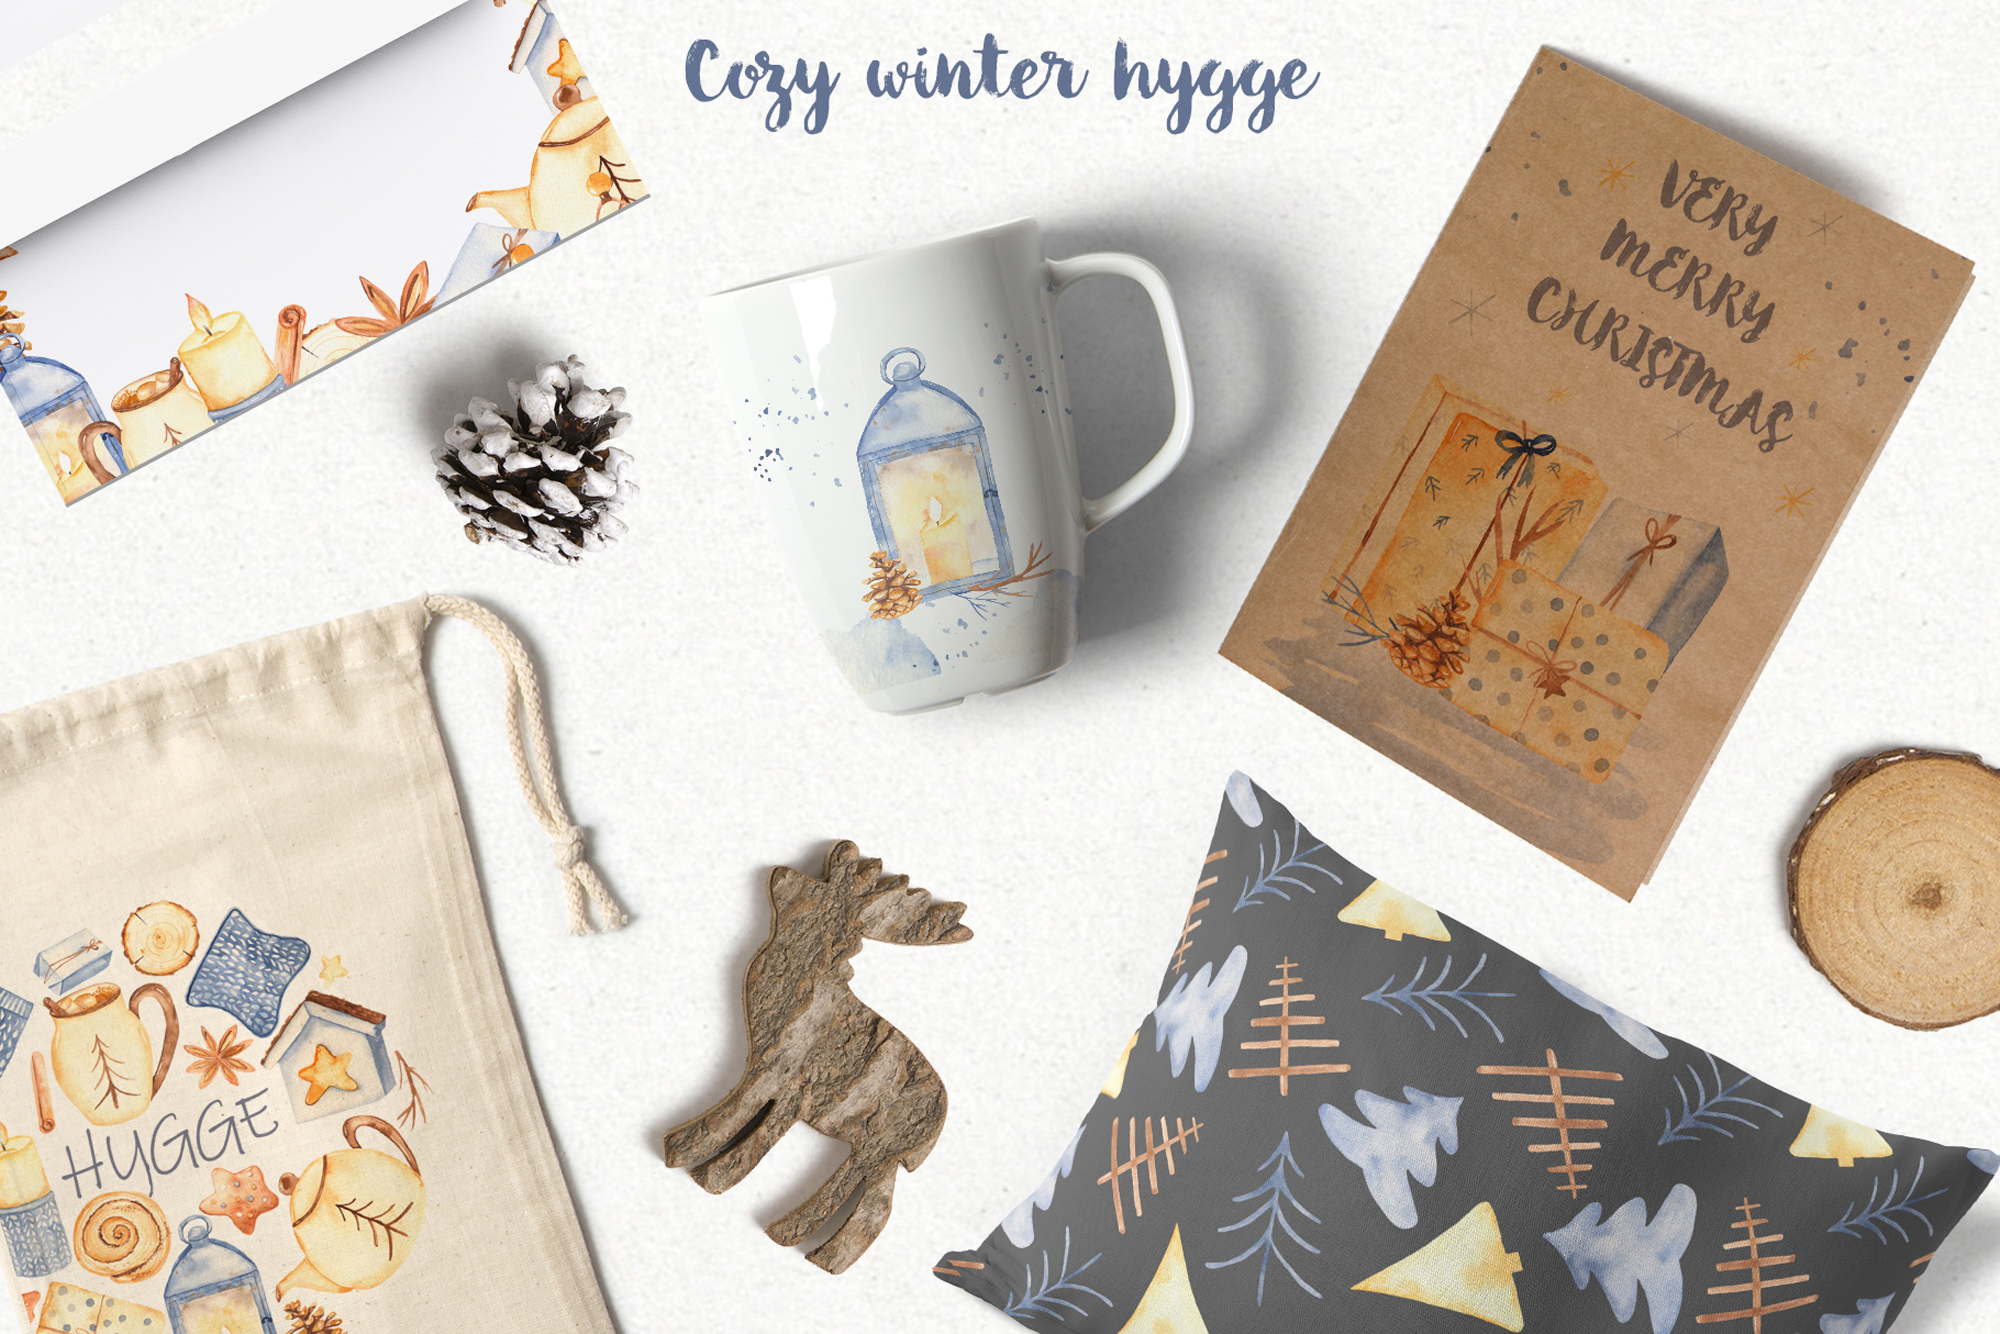 Hygge watercolor clipart Christmas cozy winter collection example image 10